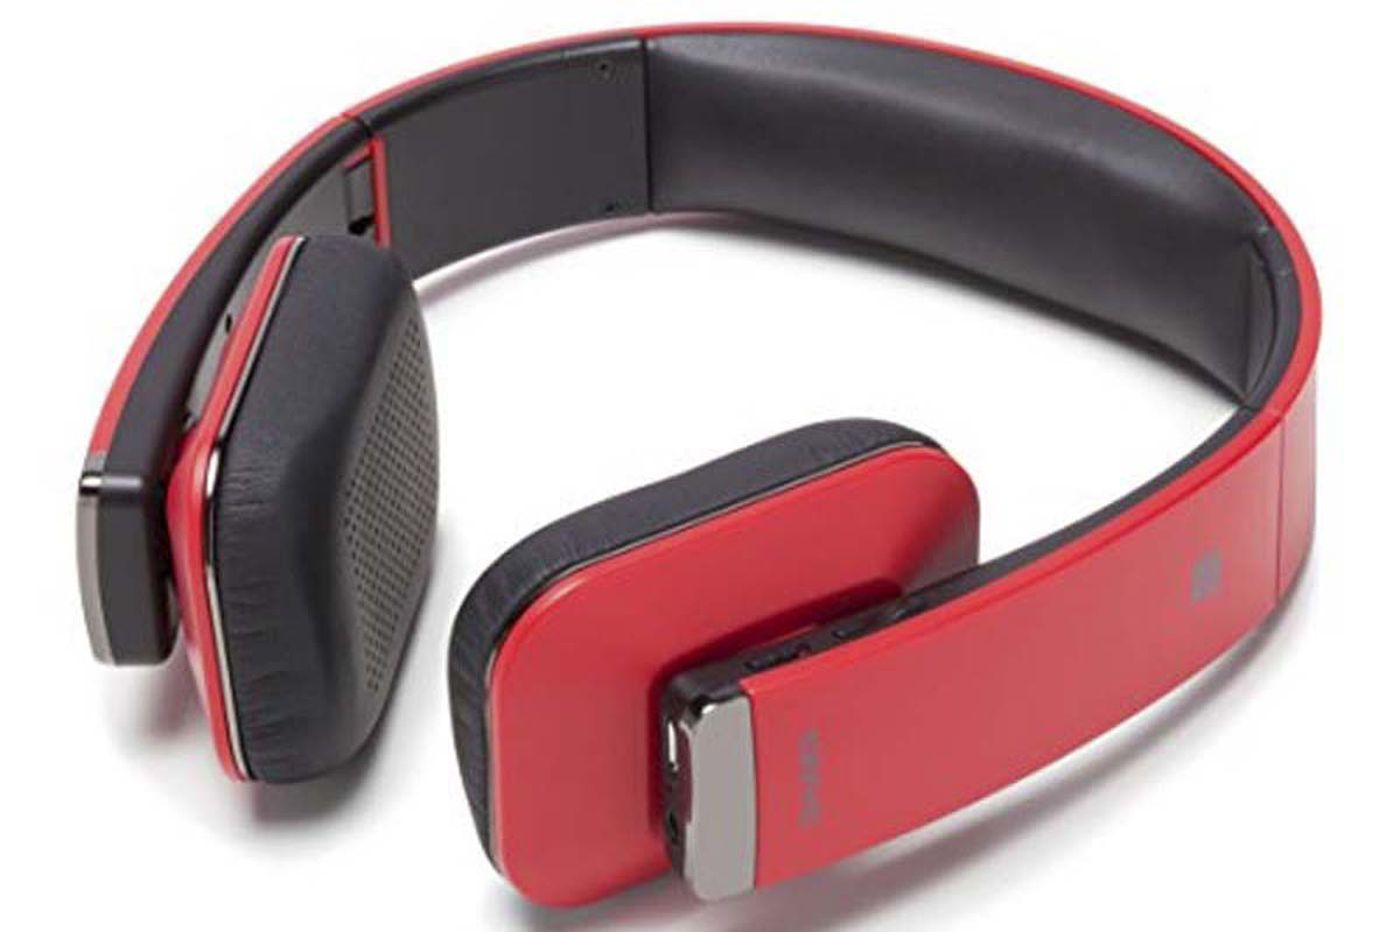 Headphones that fit just right